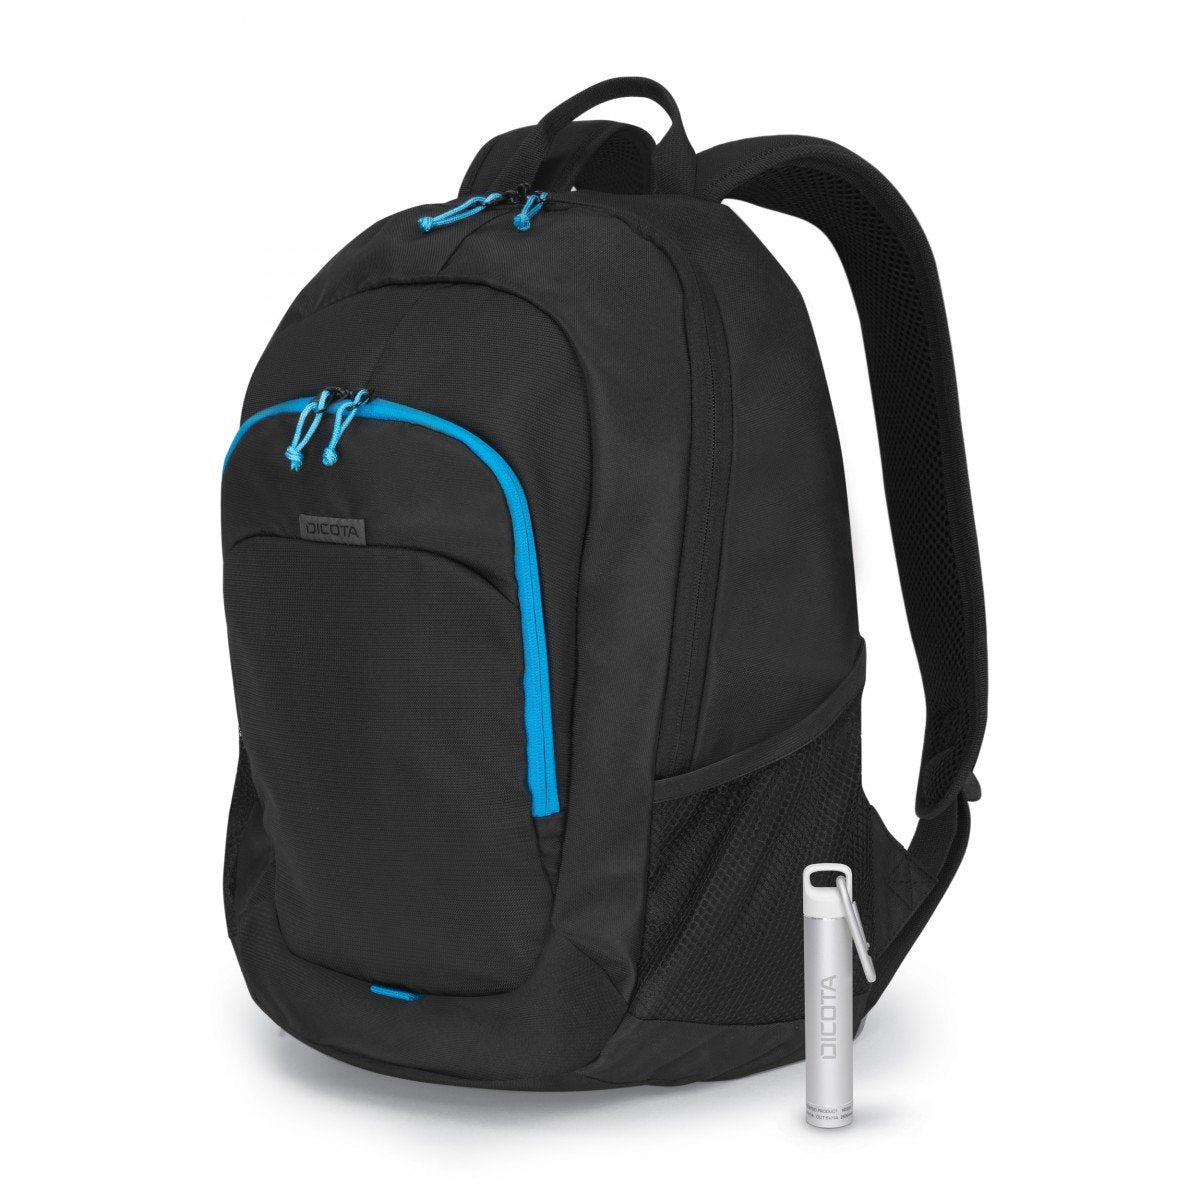 Dicota Value Backpack with powerbank 2600mAh